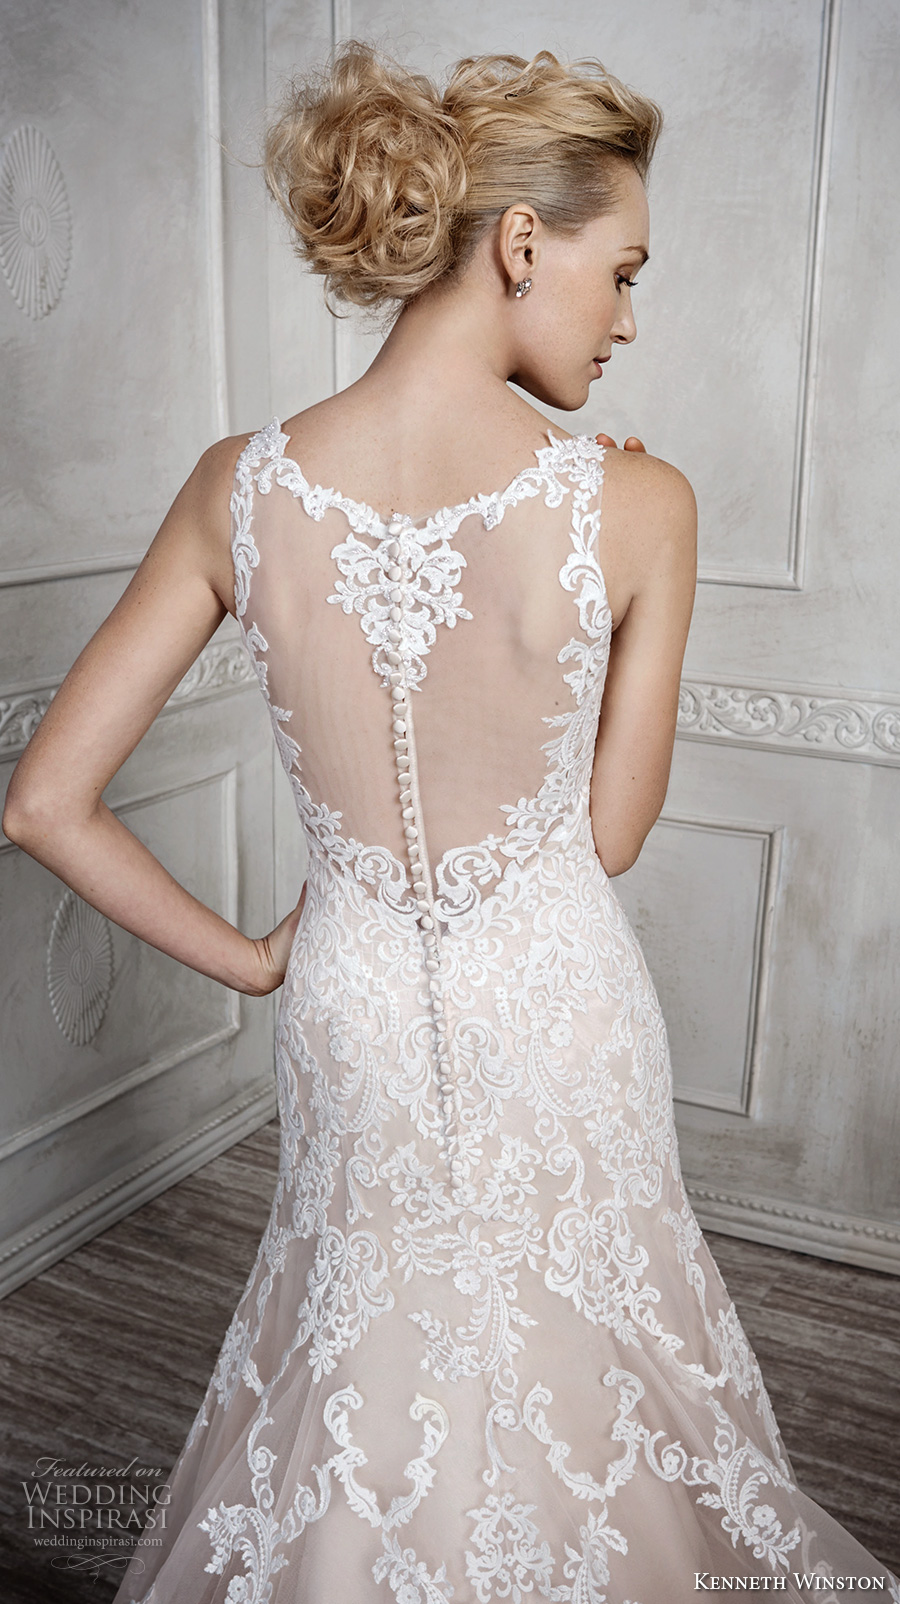 kenneth winston fall 2016 bridal sleeveless strap v neck full embellishment elegant fit and flare a line wedding dress illusion back chapel train (1678) zbv